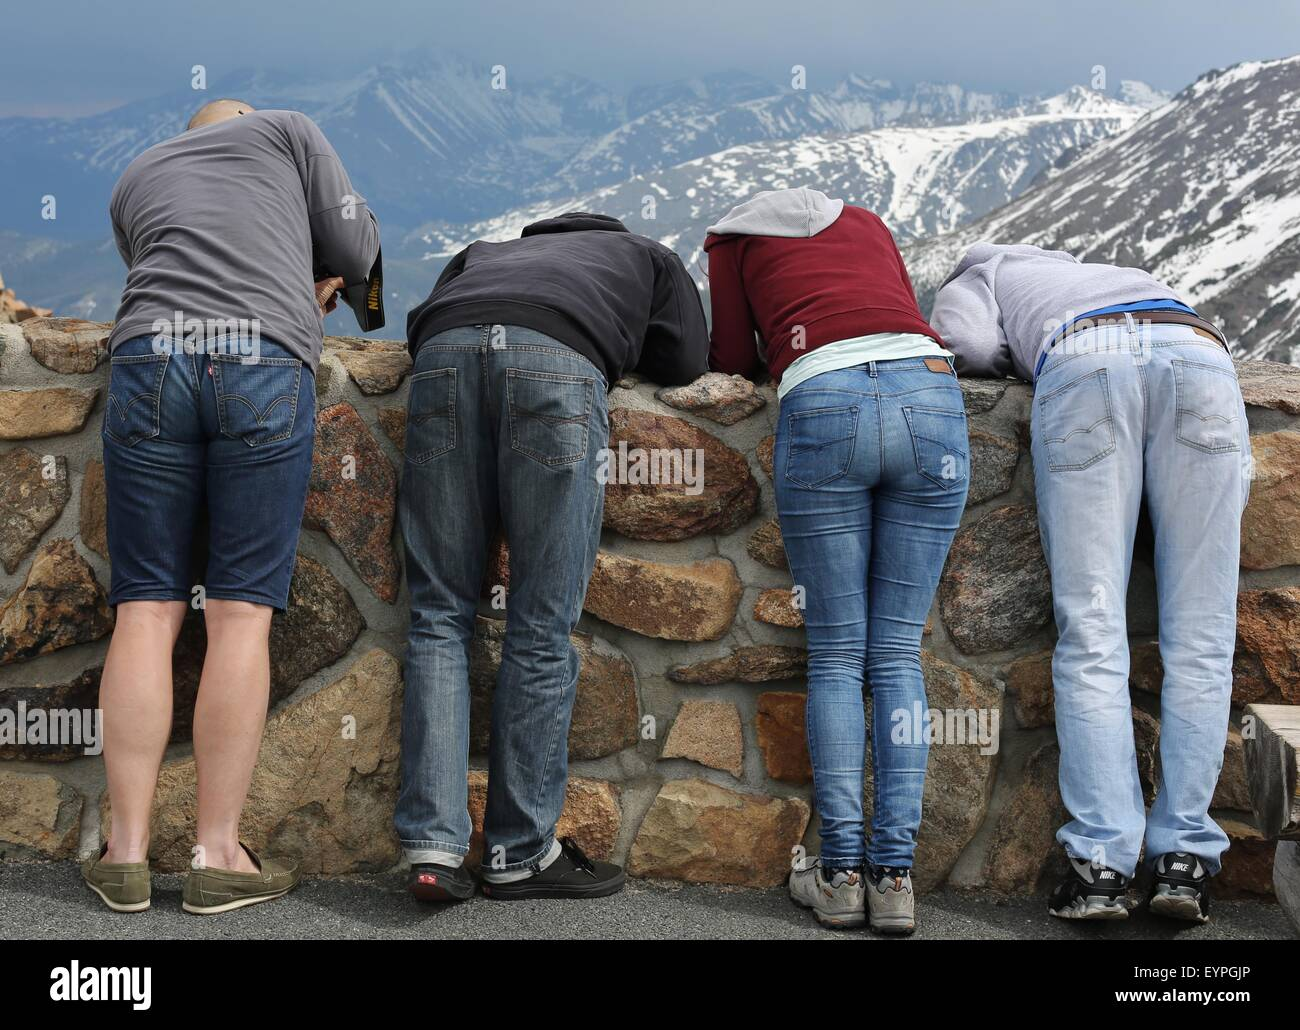 Tourists at Rocky Mountain National Park in Colorado leaning over a wall to look at something. Stock Photo